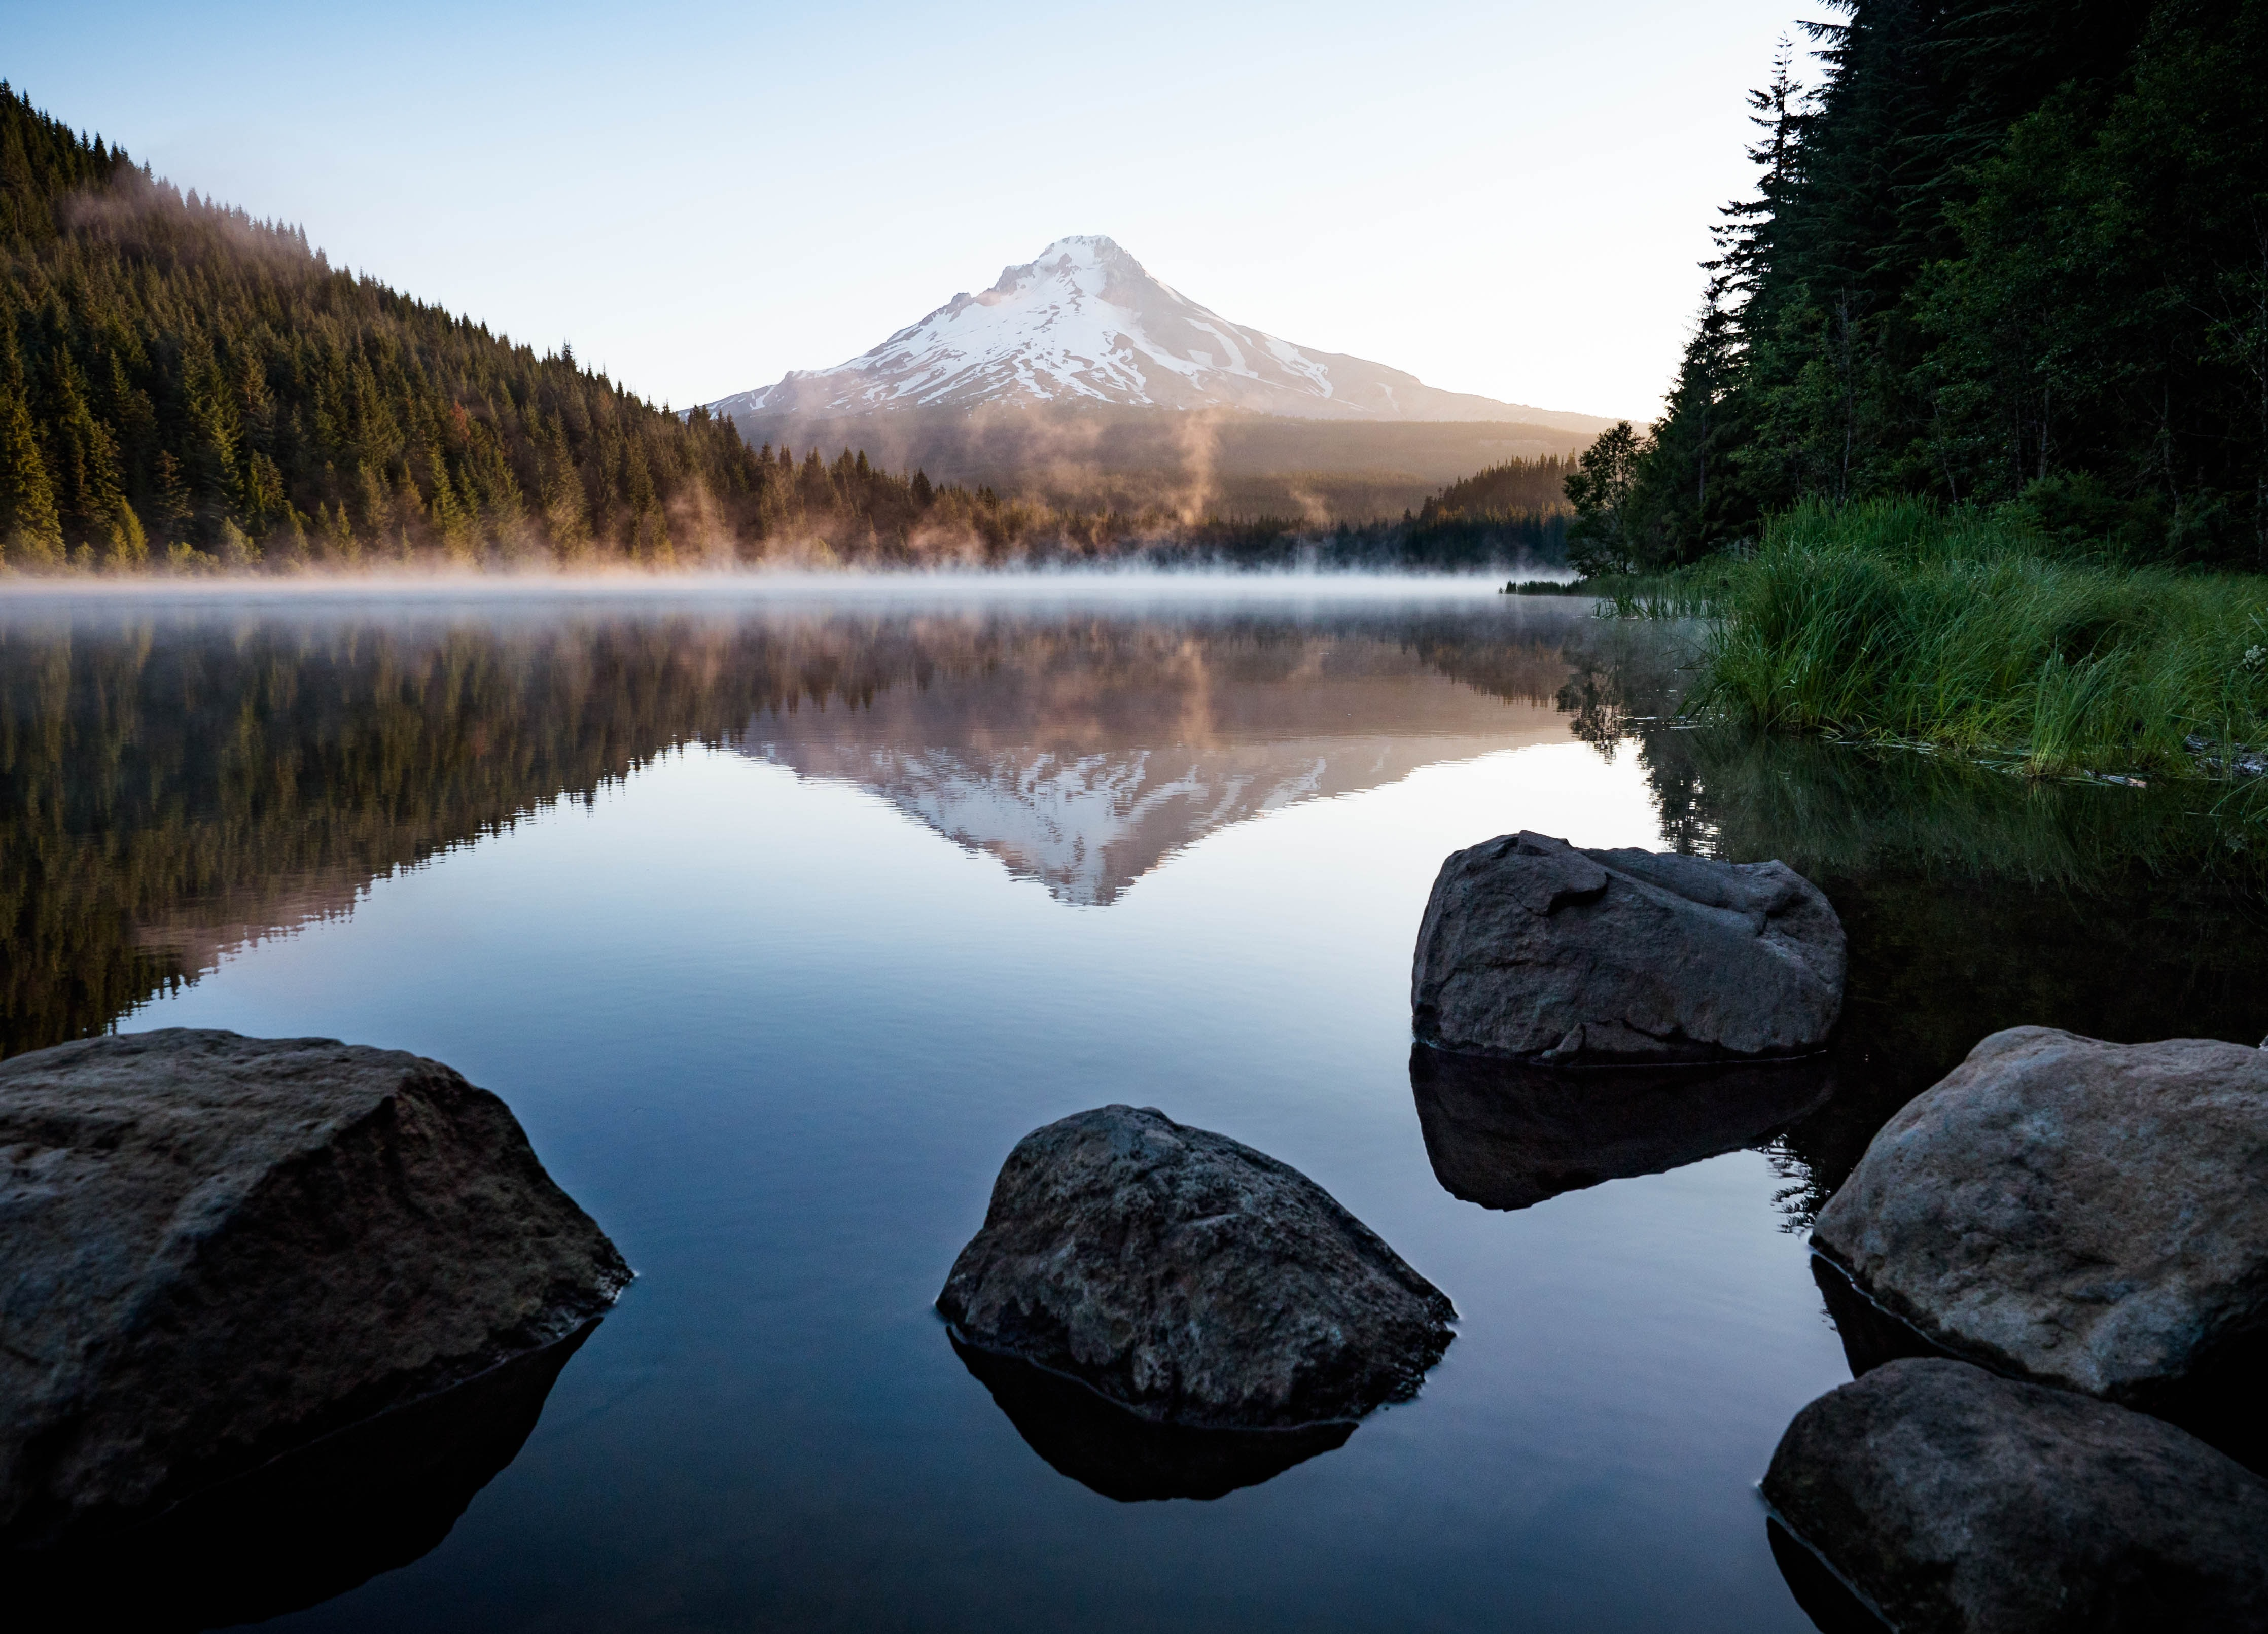 A mountain reflected in a placid lake.